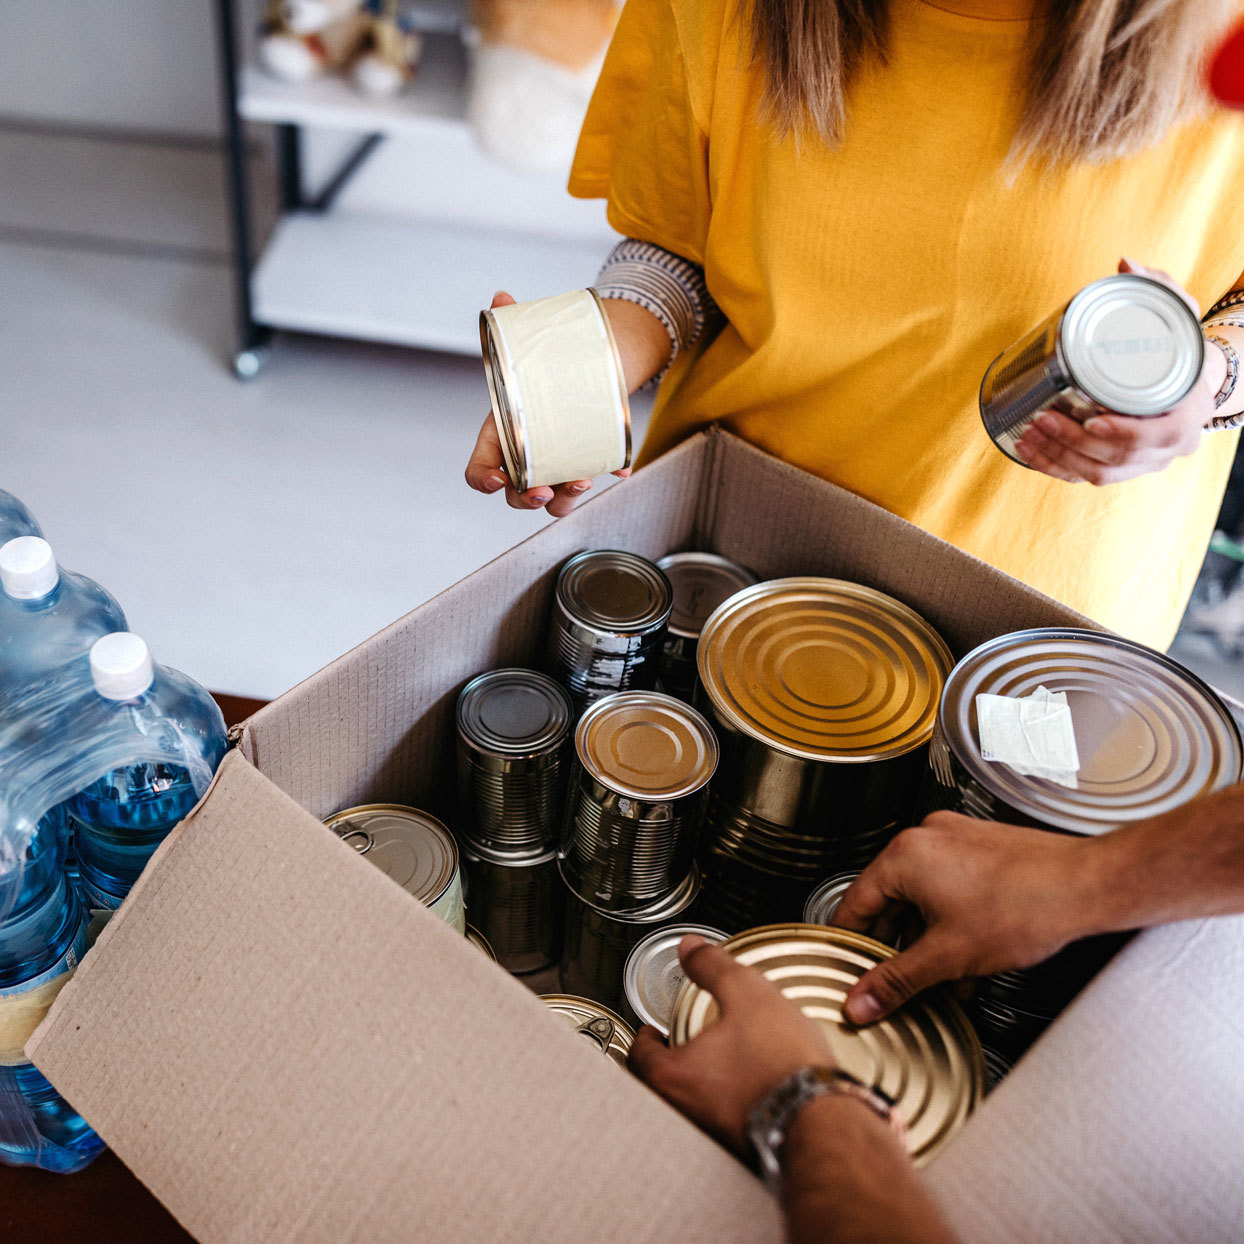 people going through a box of canned goods